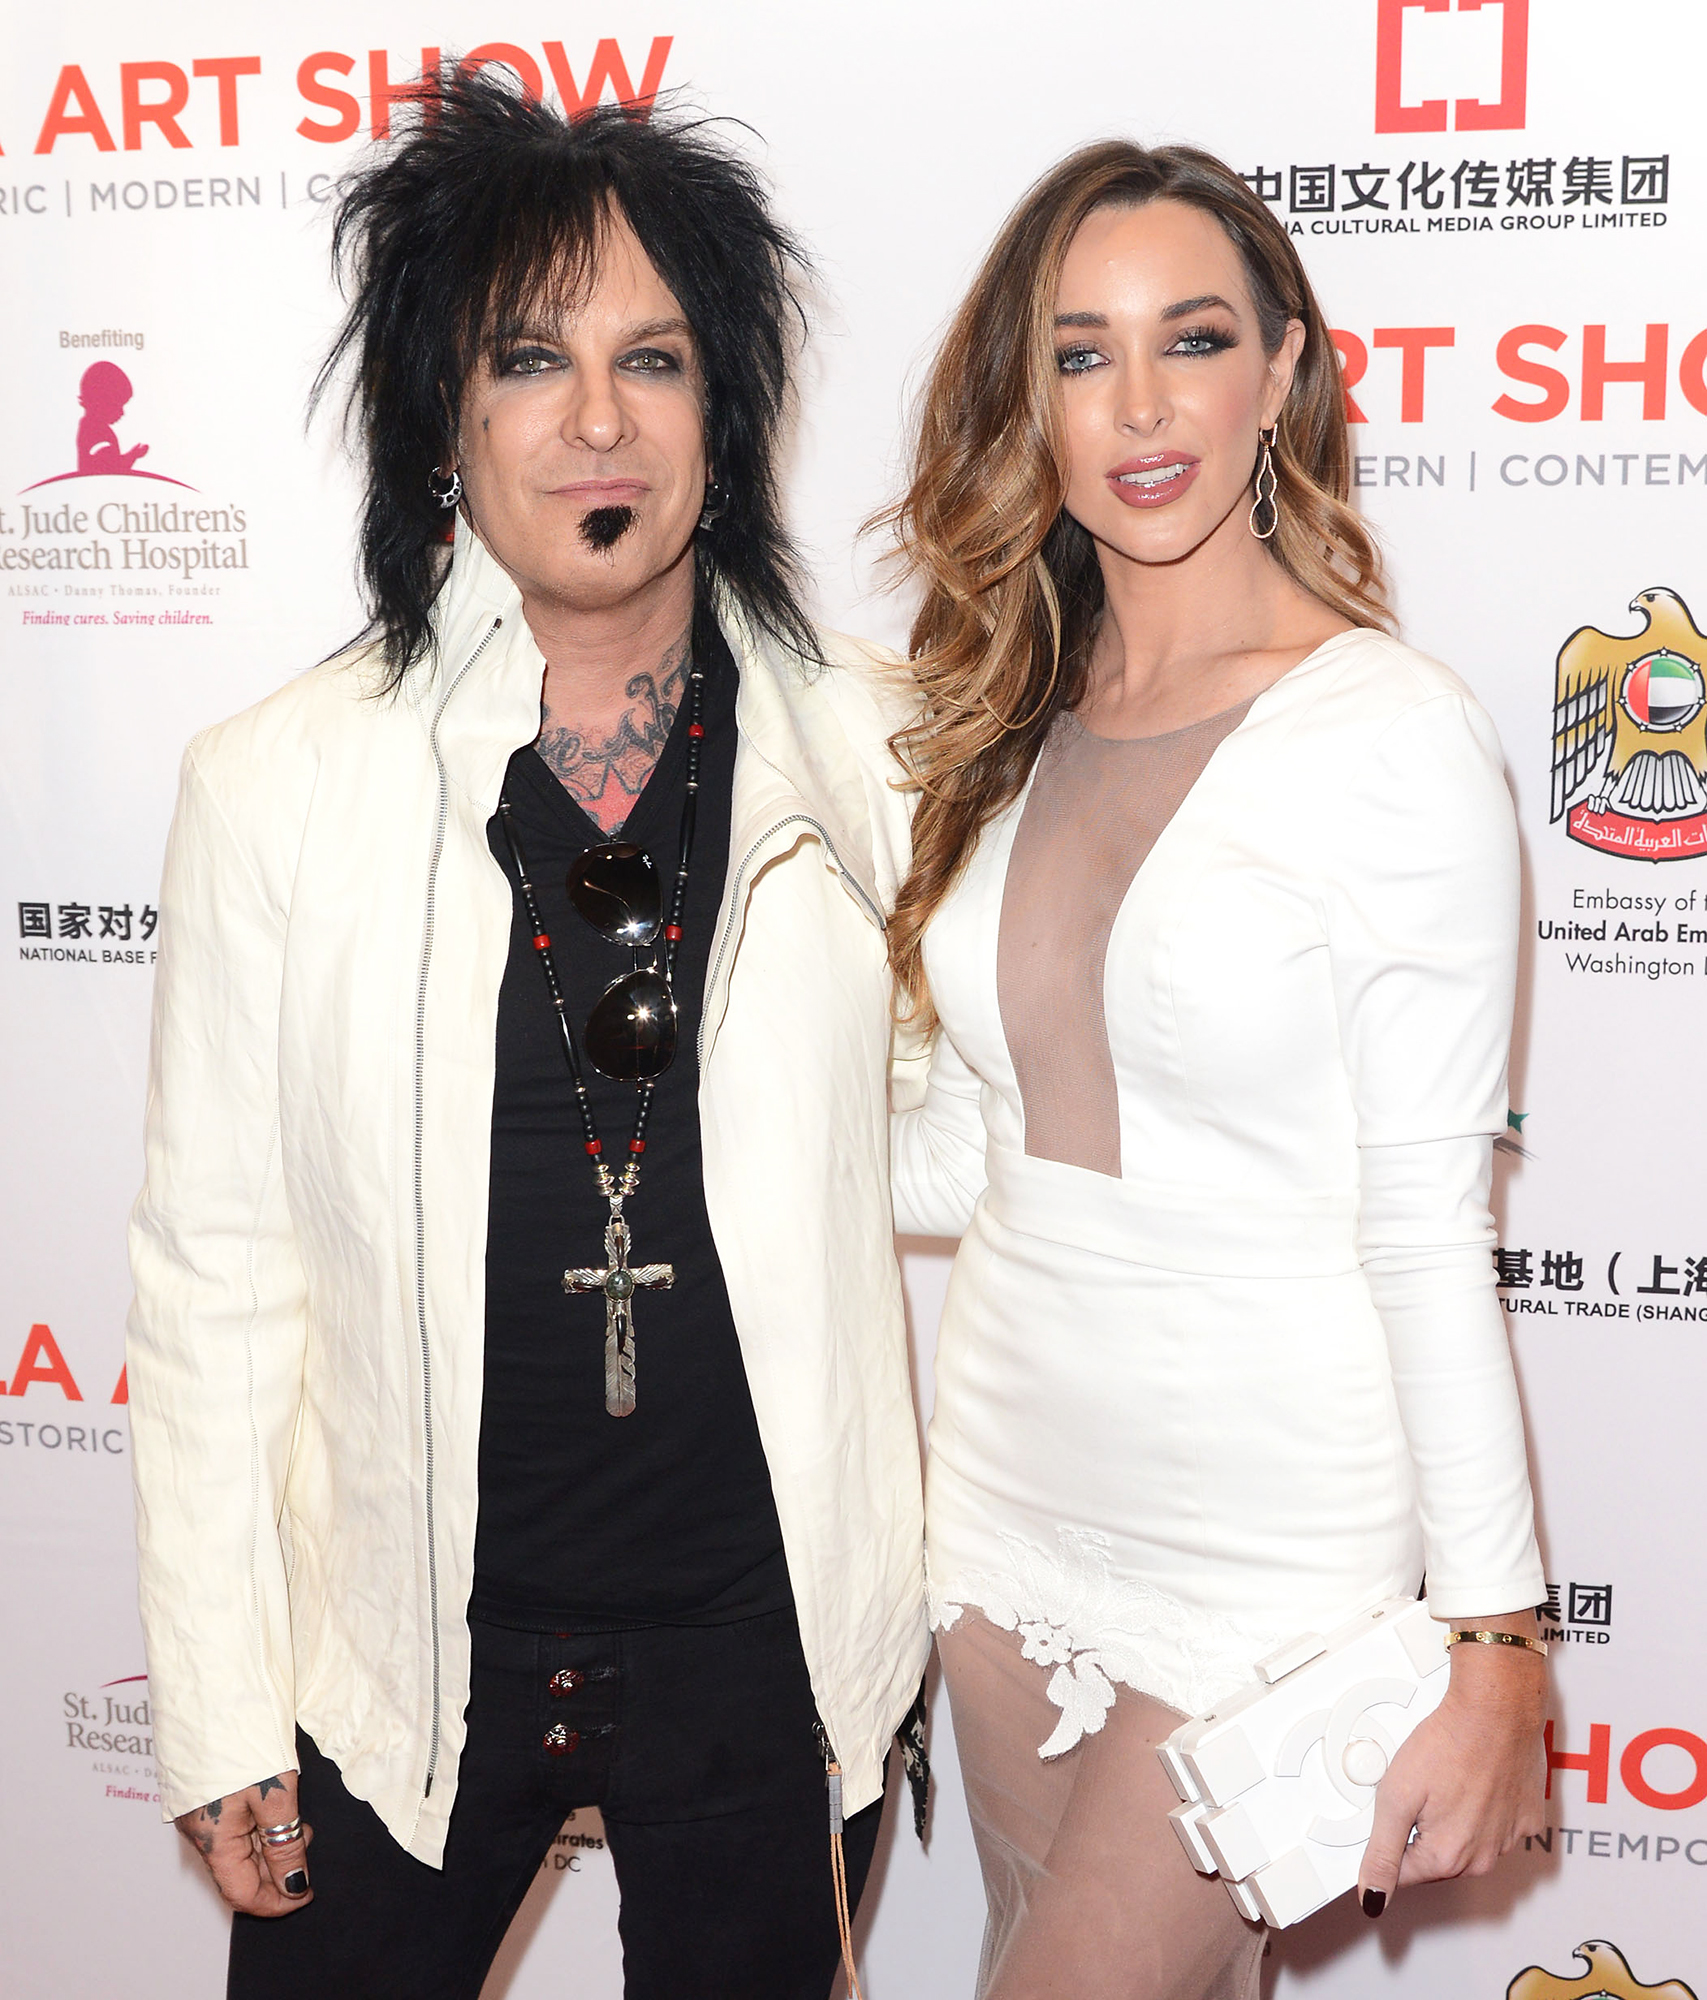 Nikki sixx and courtney